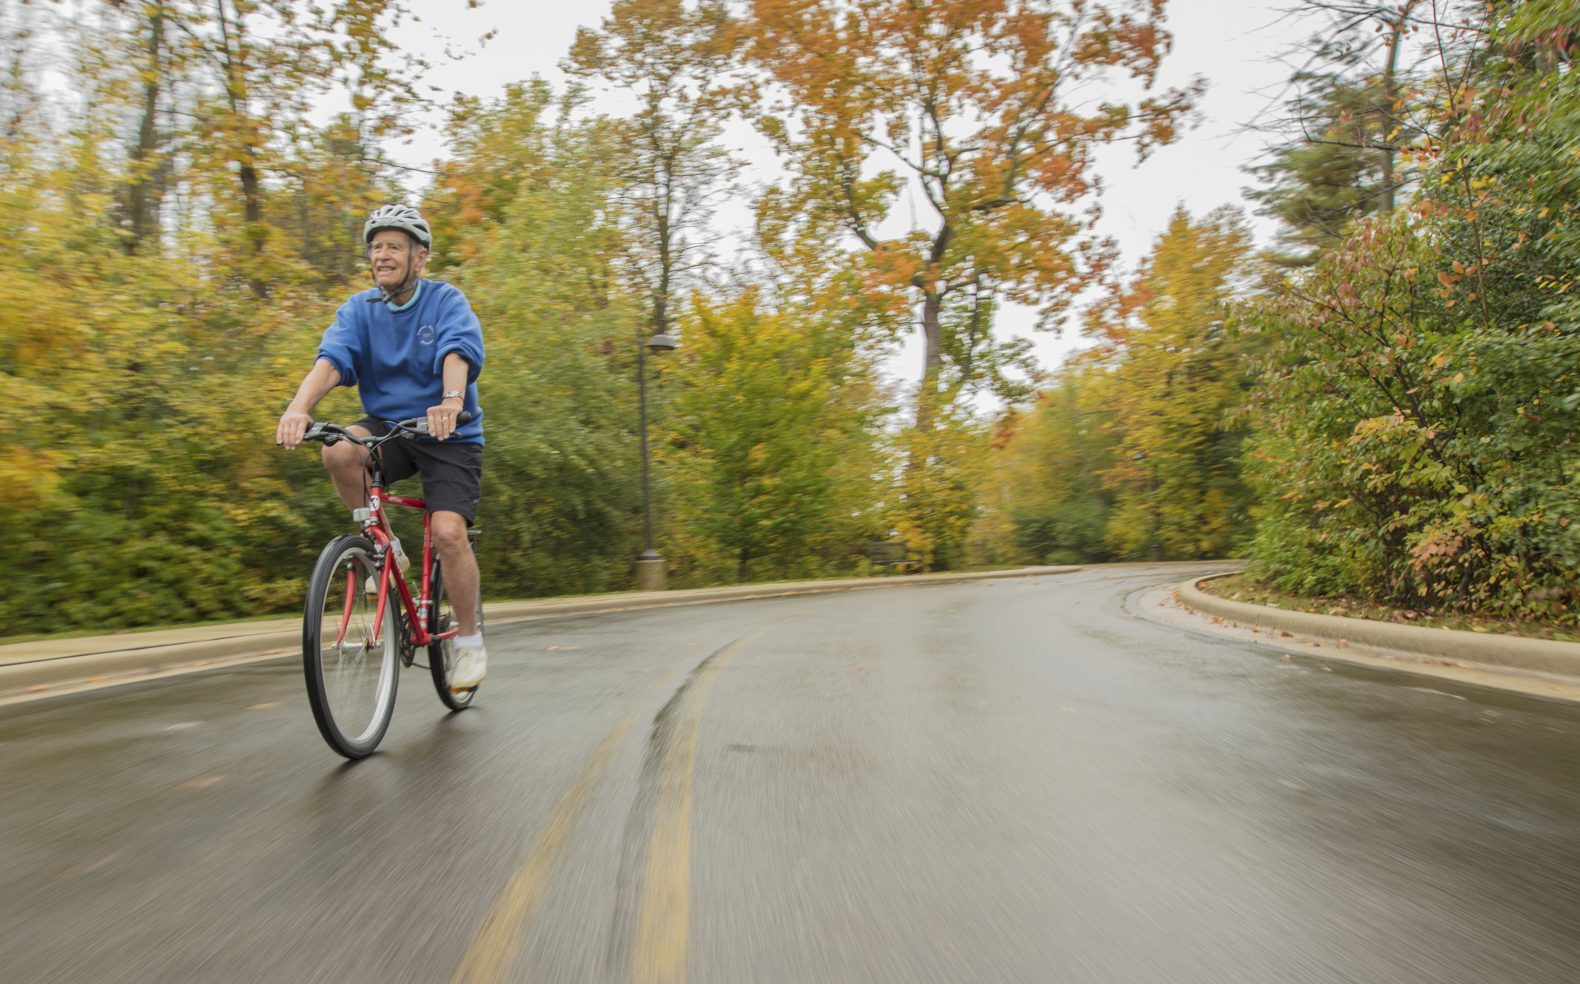 Professional photograph of an older man enjoying a bike ride on a road by trees on a crisp fall day.